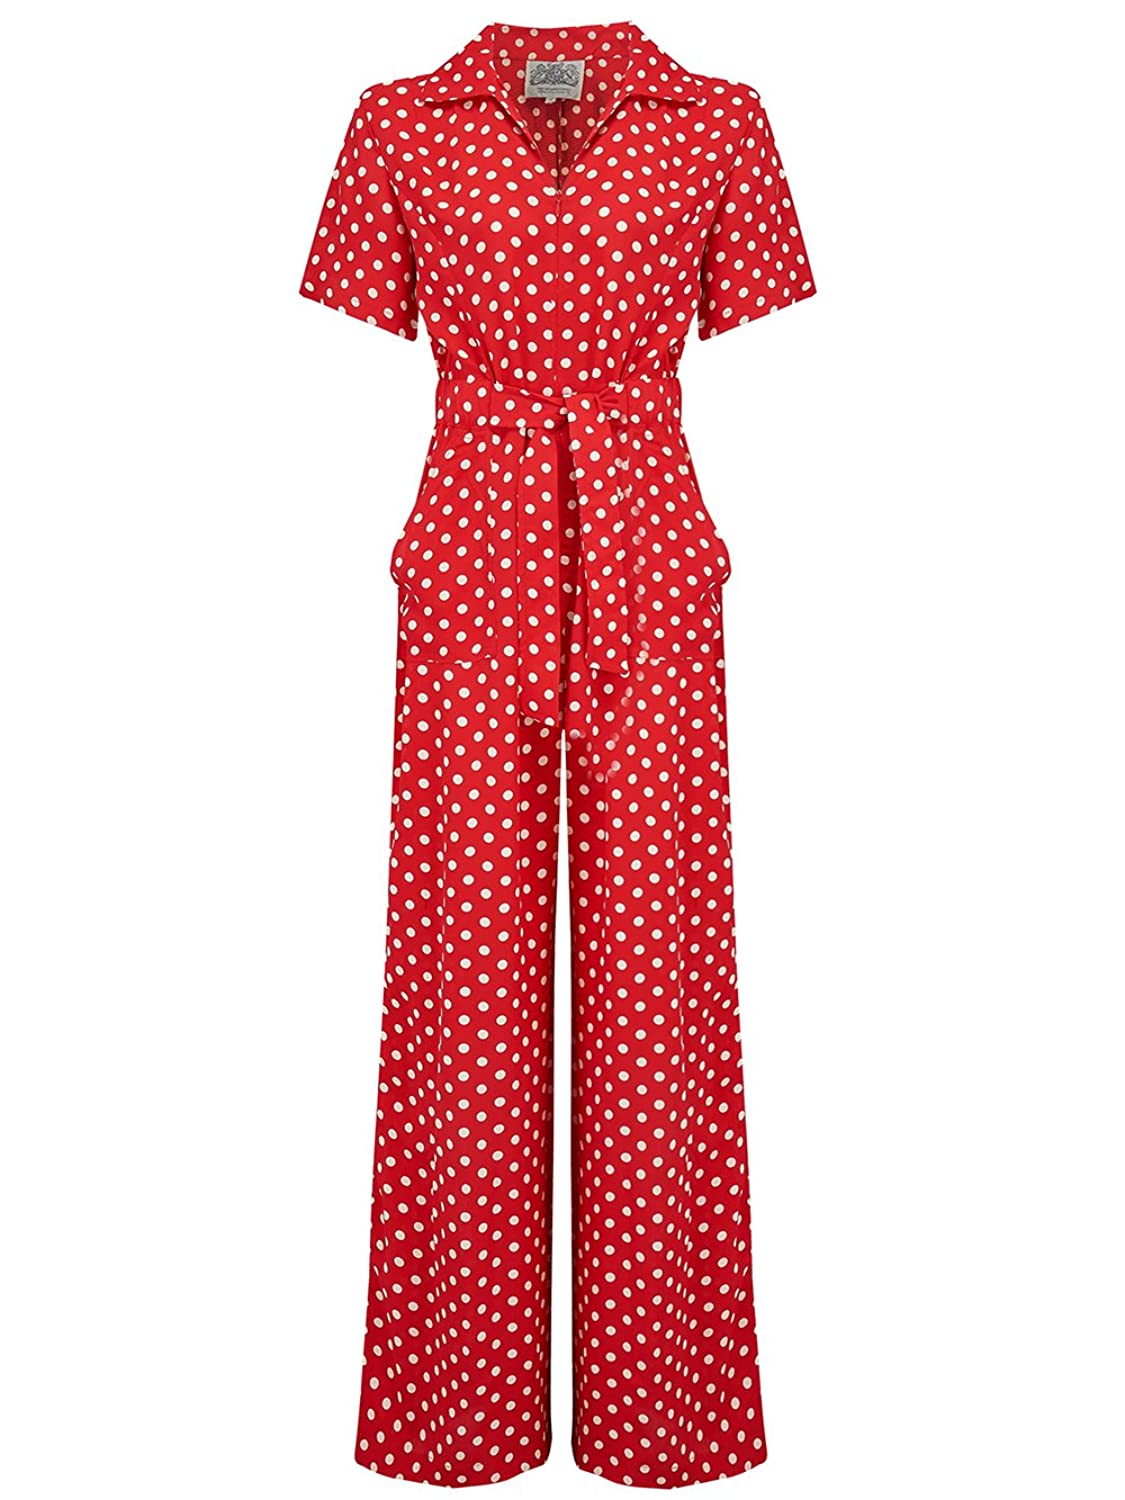 Sailor Dresses, Nautical Theme Dress, WW2 Dresses 1940s Vintage Inspired Lauren jumpsuit in Red Spot by The Seamstress of Bloomsbury £89.00 AT vintagedancer.com